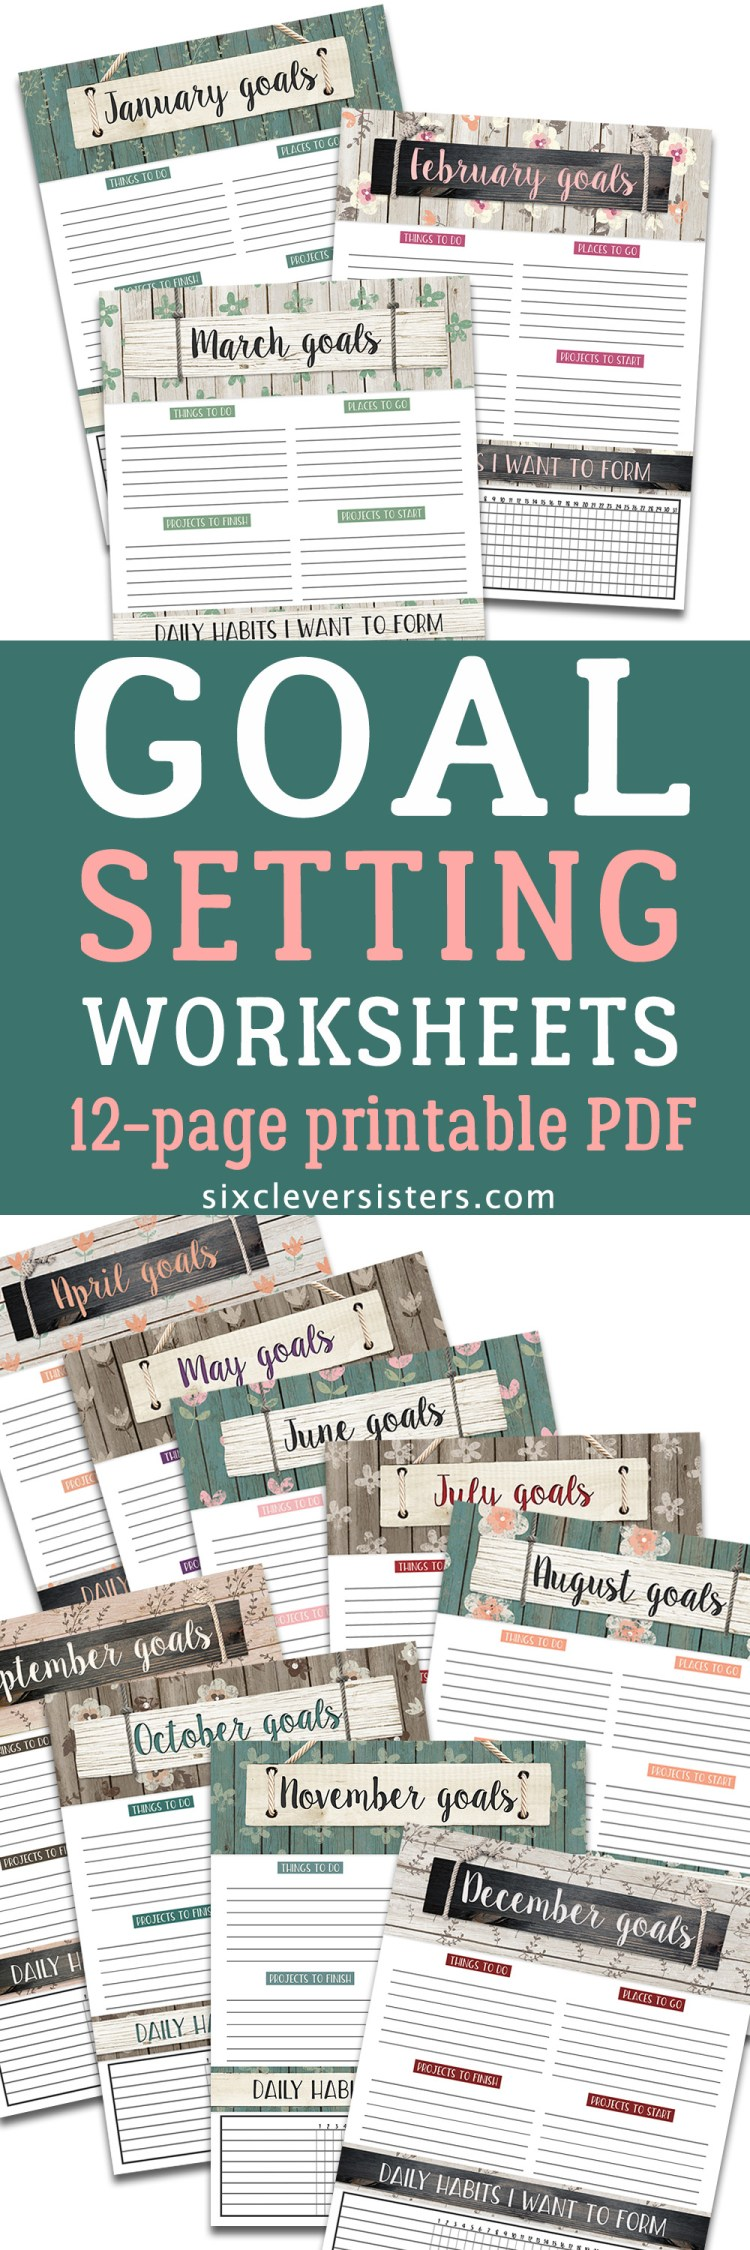 Goal Setting Worksheet | Goal Setting Worksheet for Adults | Goal Setting Worksheet Printables | Free Download Goals Worksheet | Free Printable | Printable Worksheet | Goals Worksheet | Goals Printable | Download our free printable goal setting worksheets on the Six Clever Sisters blog!